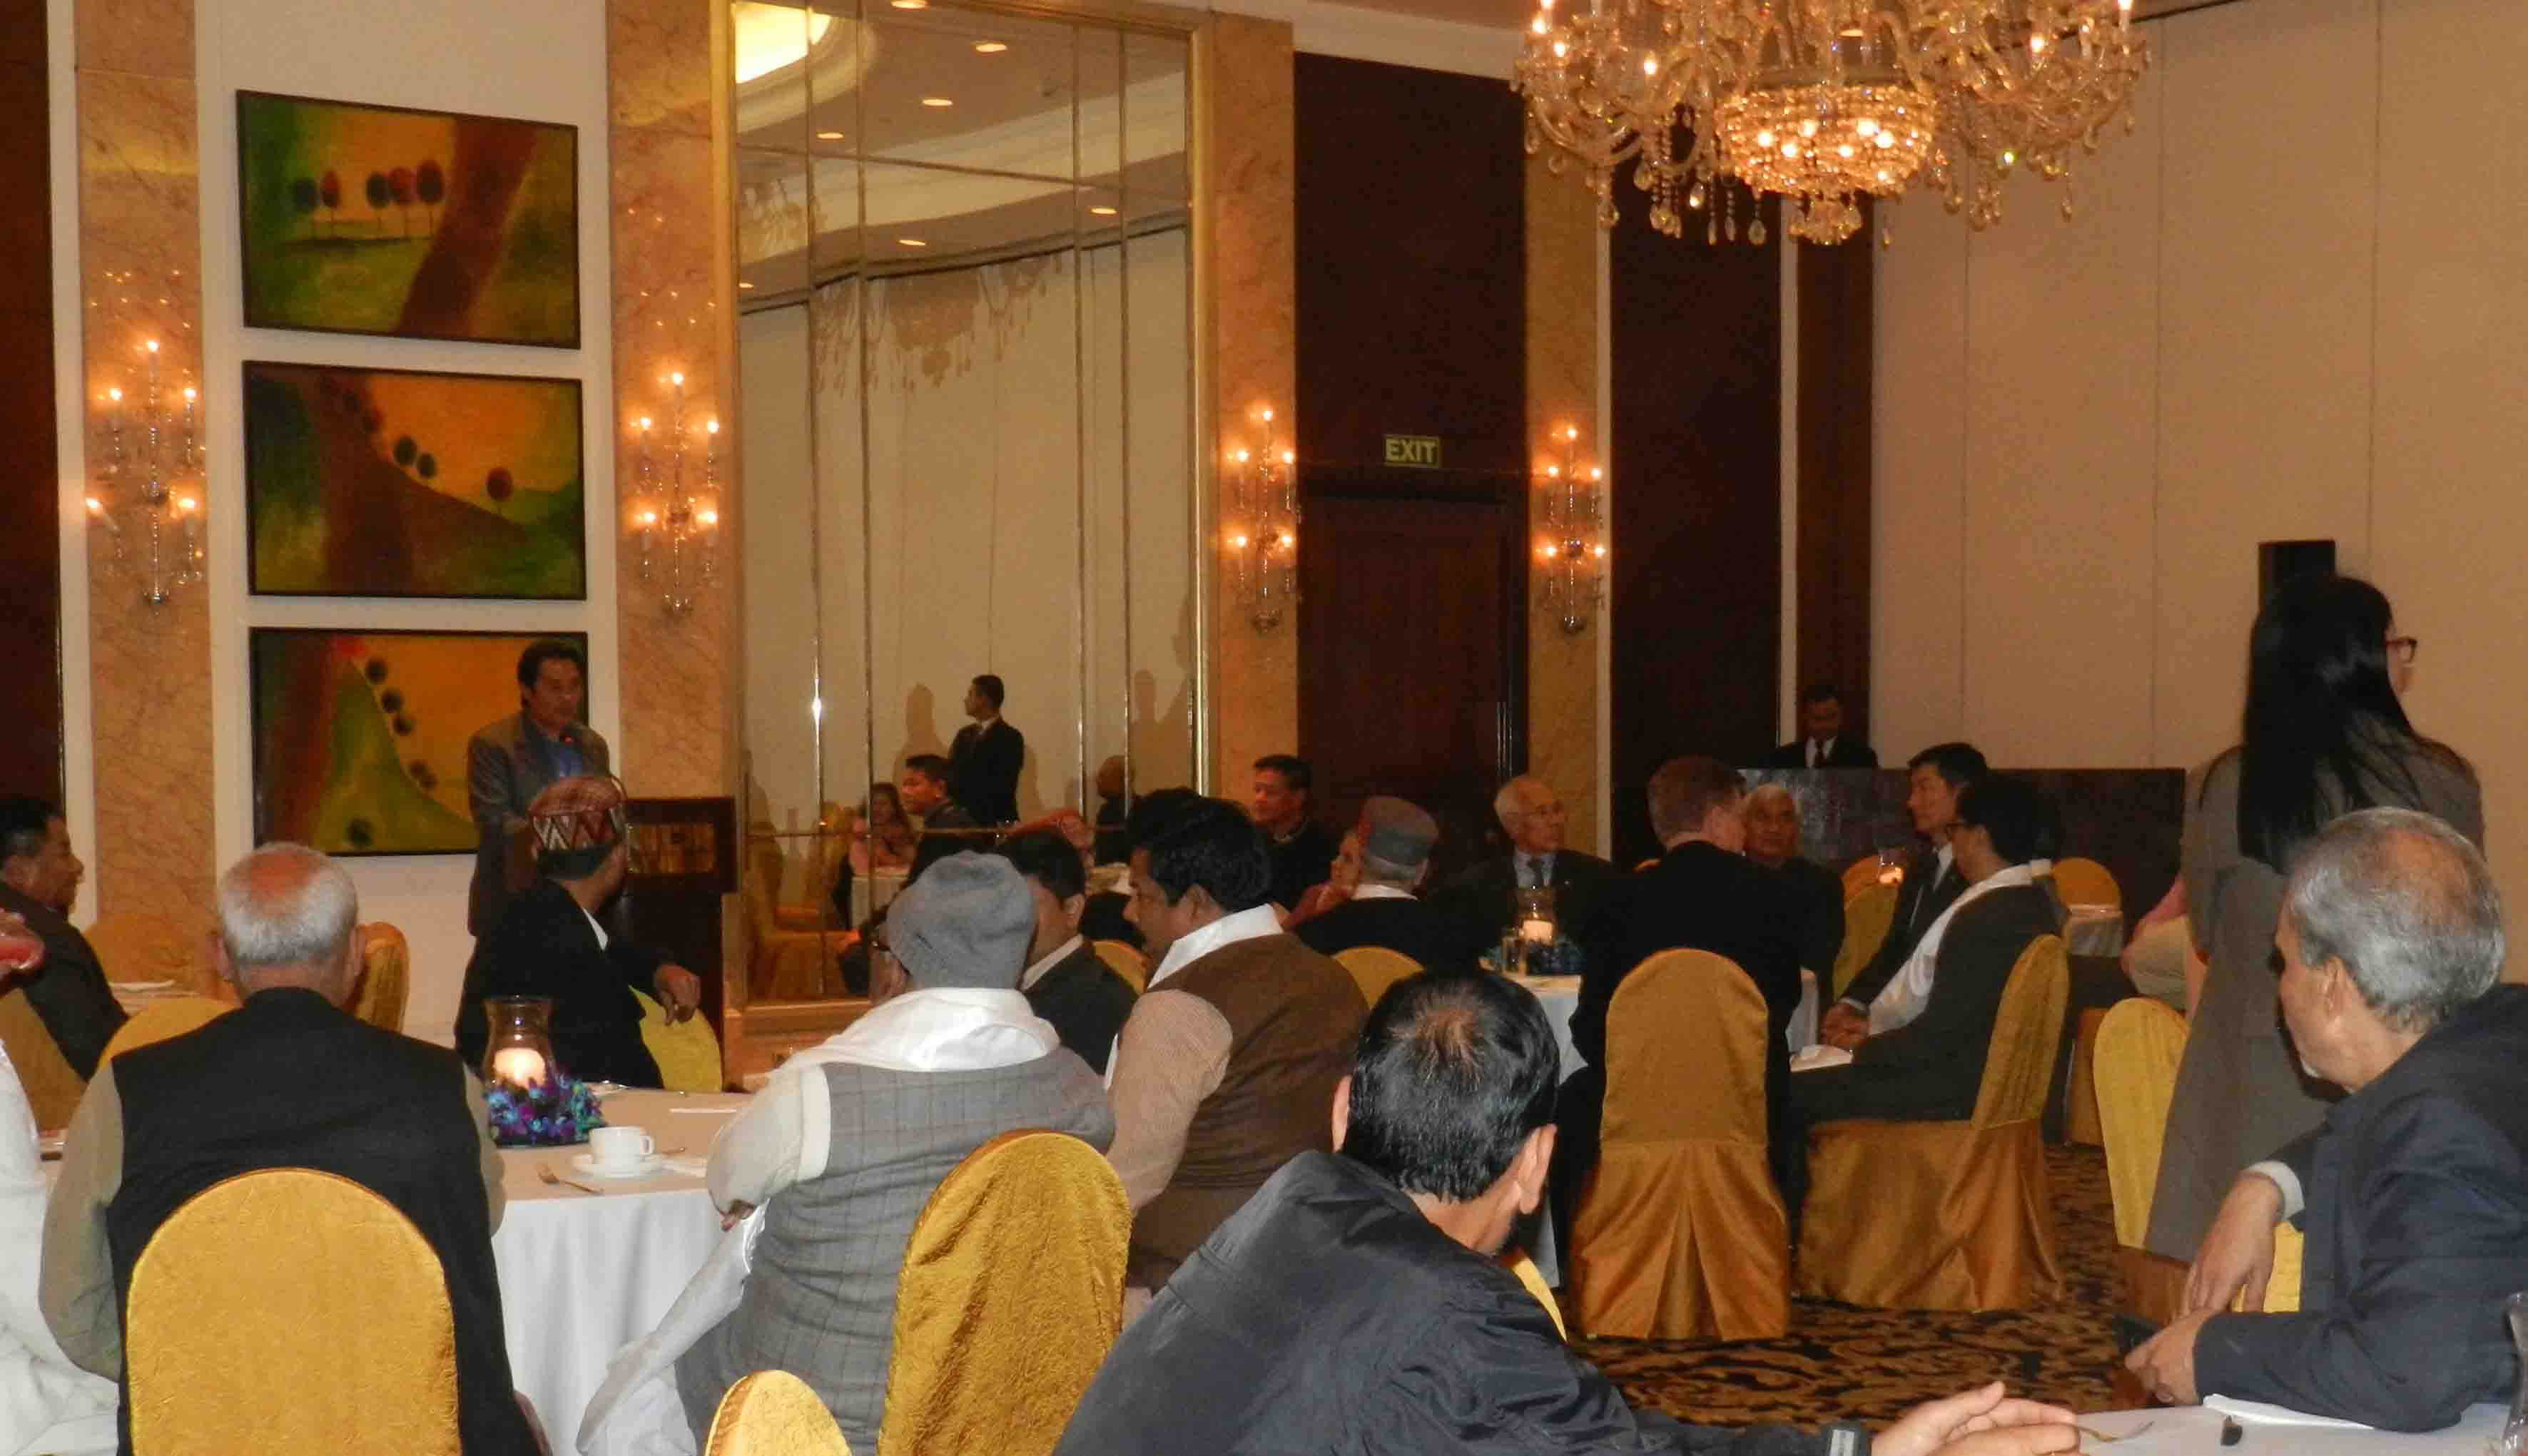 Dinner reception hosted on Dec 15, 2014 at the Shangri-la Hotel, New Delhi for the revival of the All Party Indian Parliamentary Forum for Tibet (APPFT). It was attended by 30 MPs from 28 major political parties. (Photo courtesy: TPPRC)